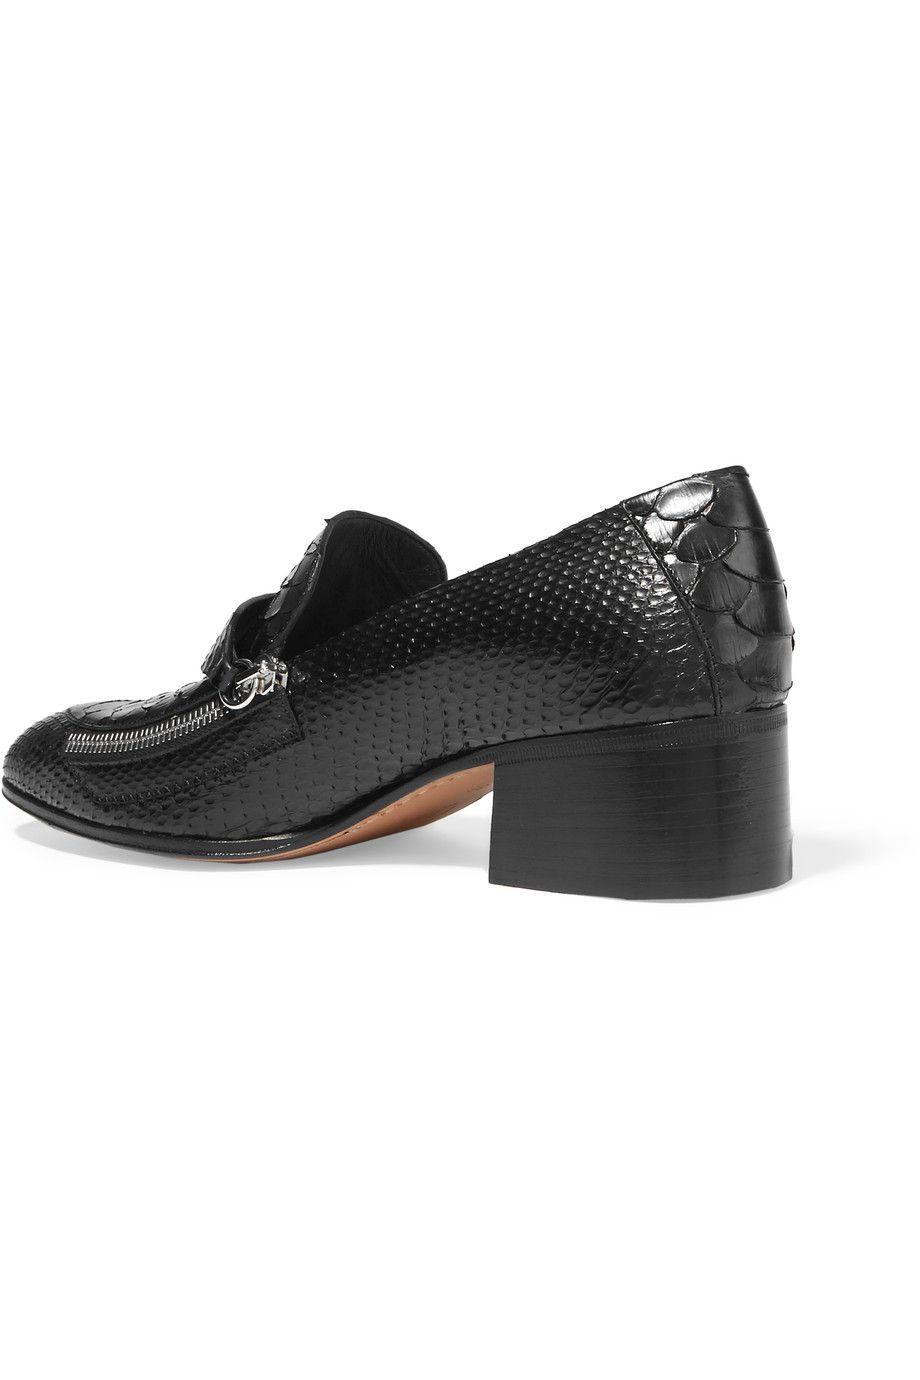 Shop on-sale Chloé Zip-detailed python loafers. Browse other discount designer Pumps & more on The Most Fashionable Fashion Outlet, THE OUTNET.COM